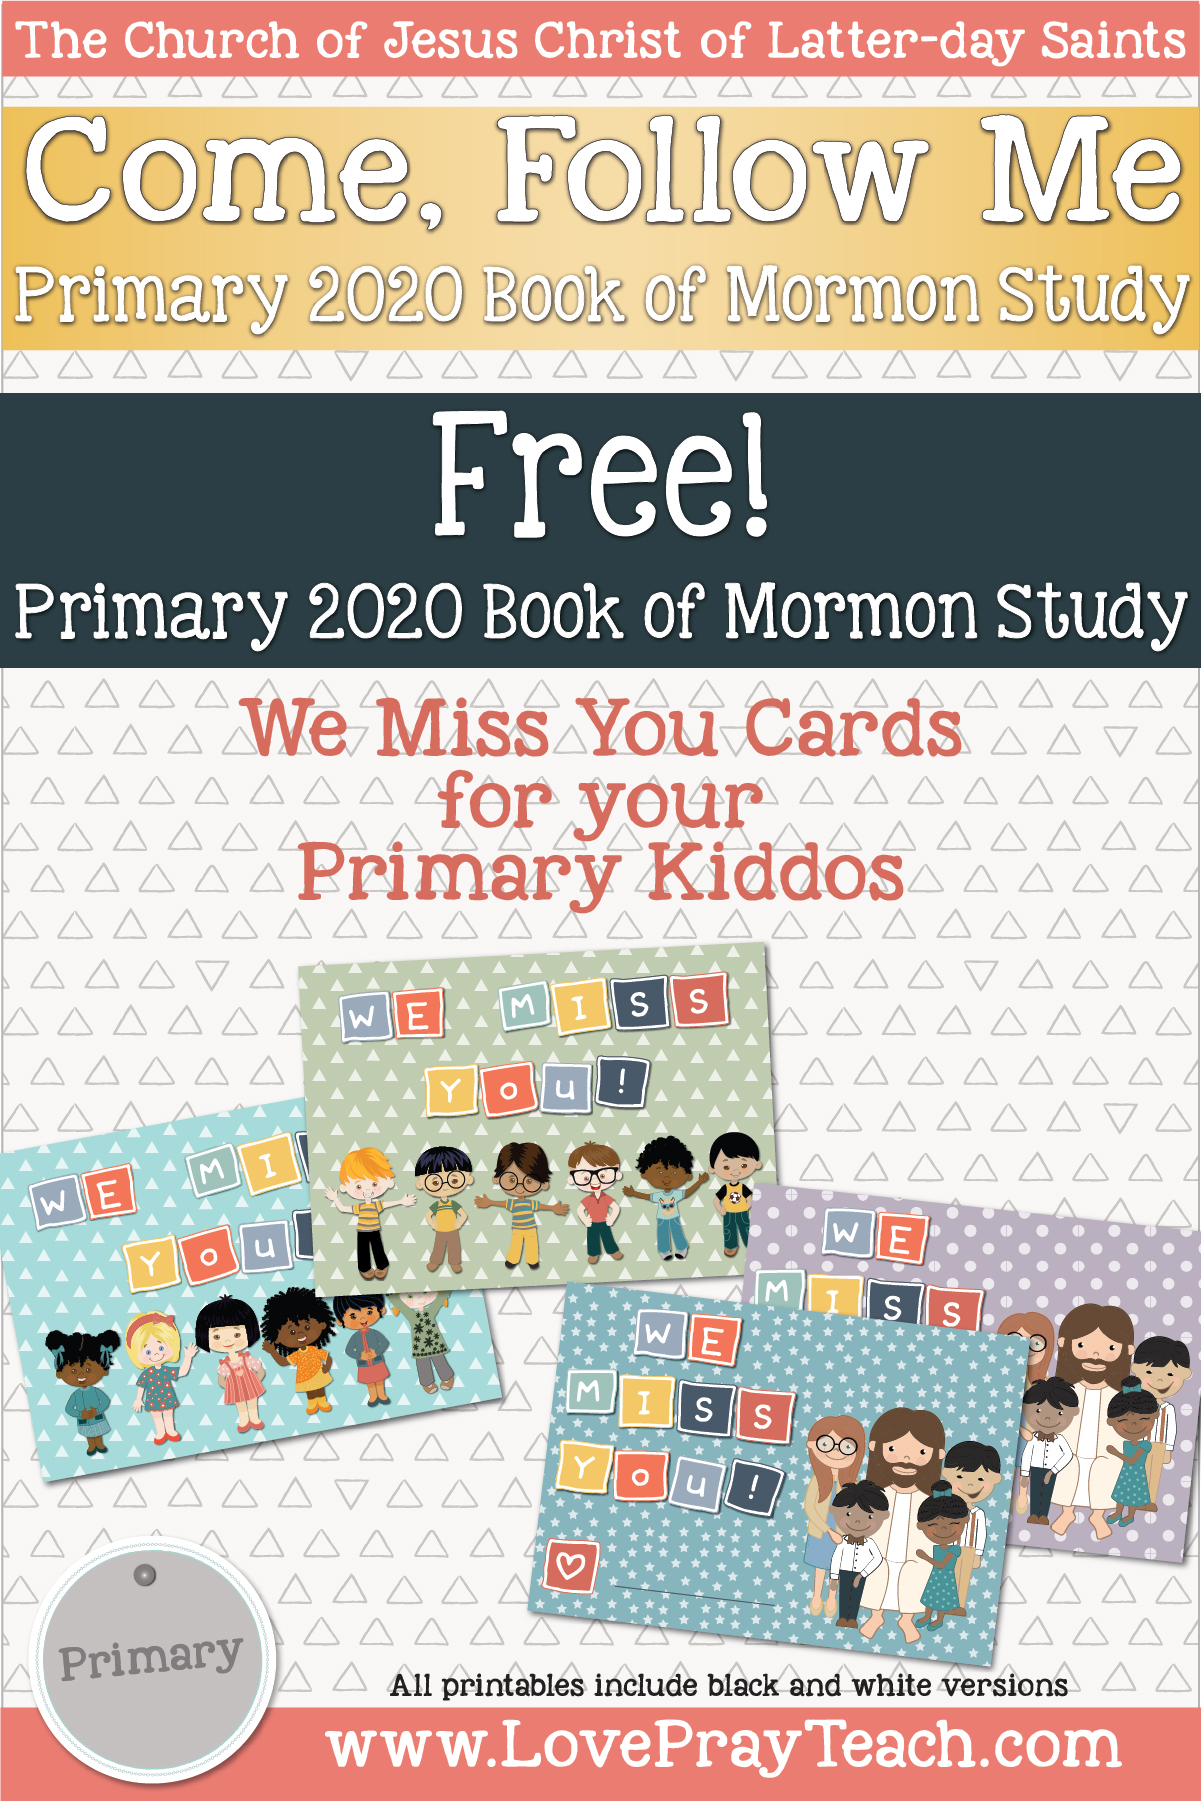 Love Pray Teach FREE! We Miss You! Cards to send to your sweet kiddos www.LovePrayTeach.com